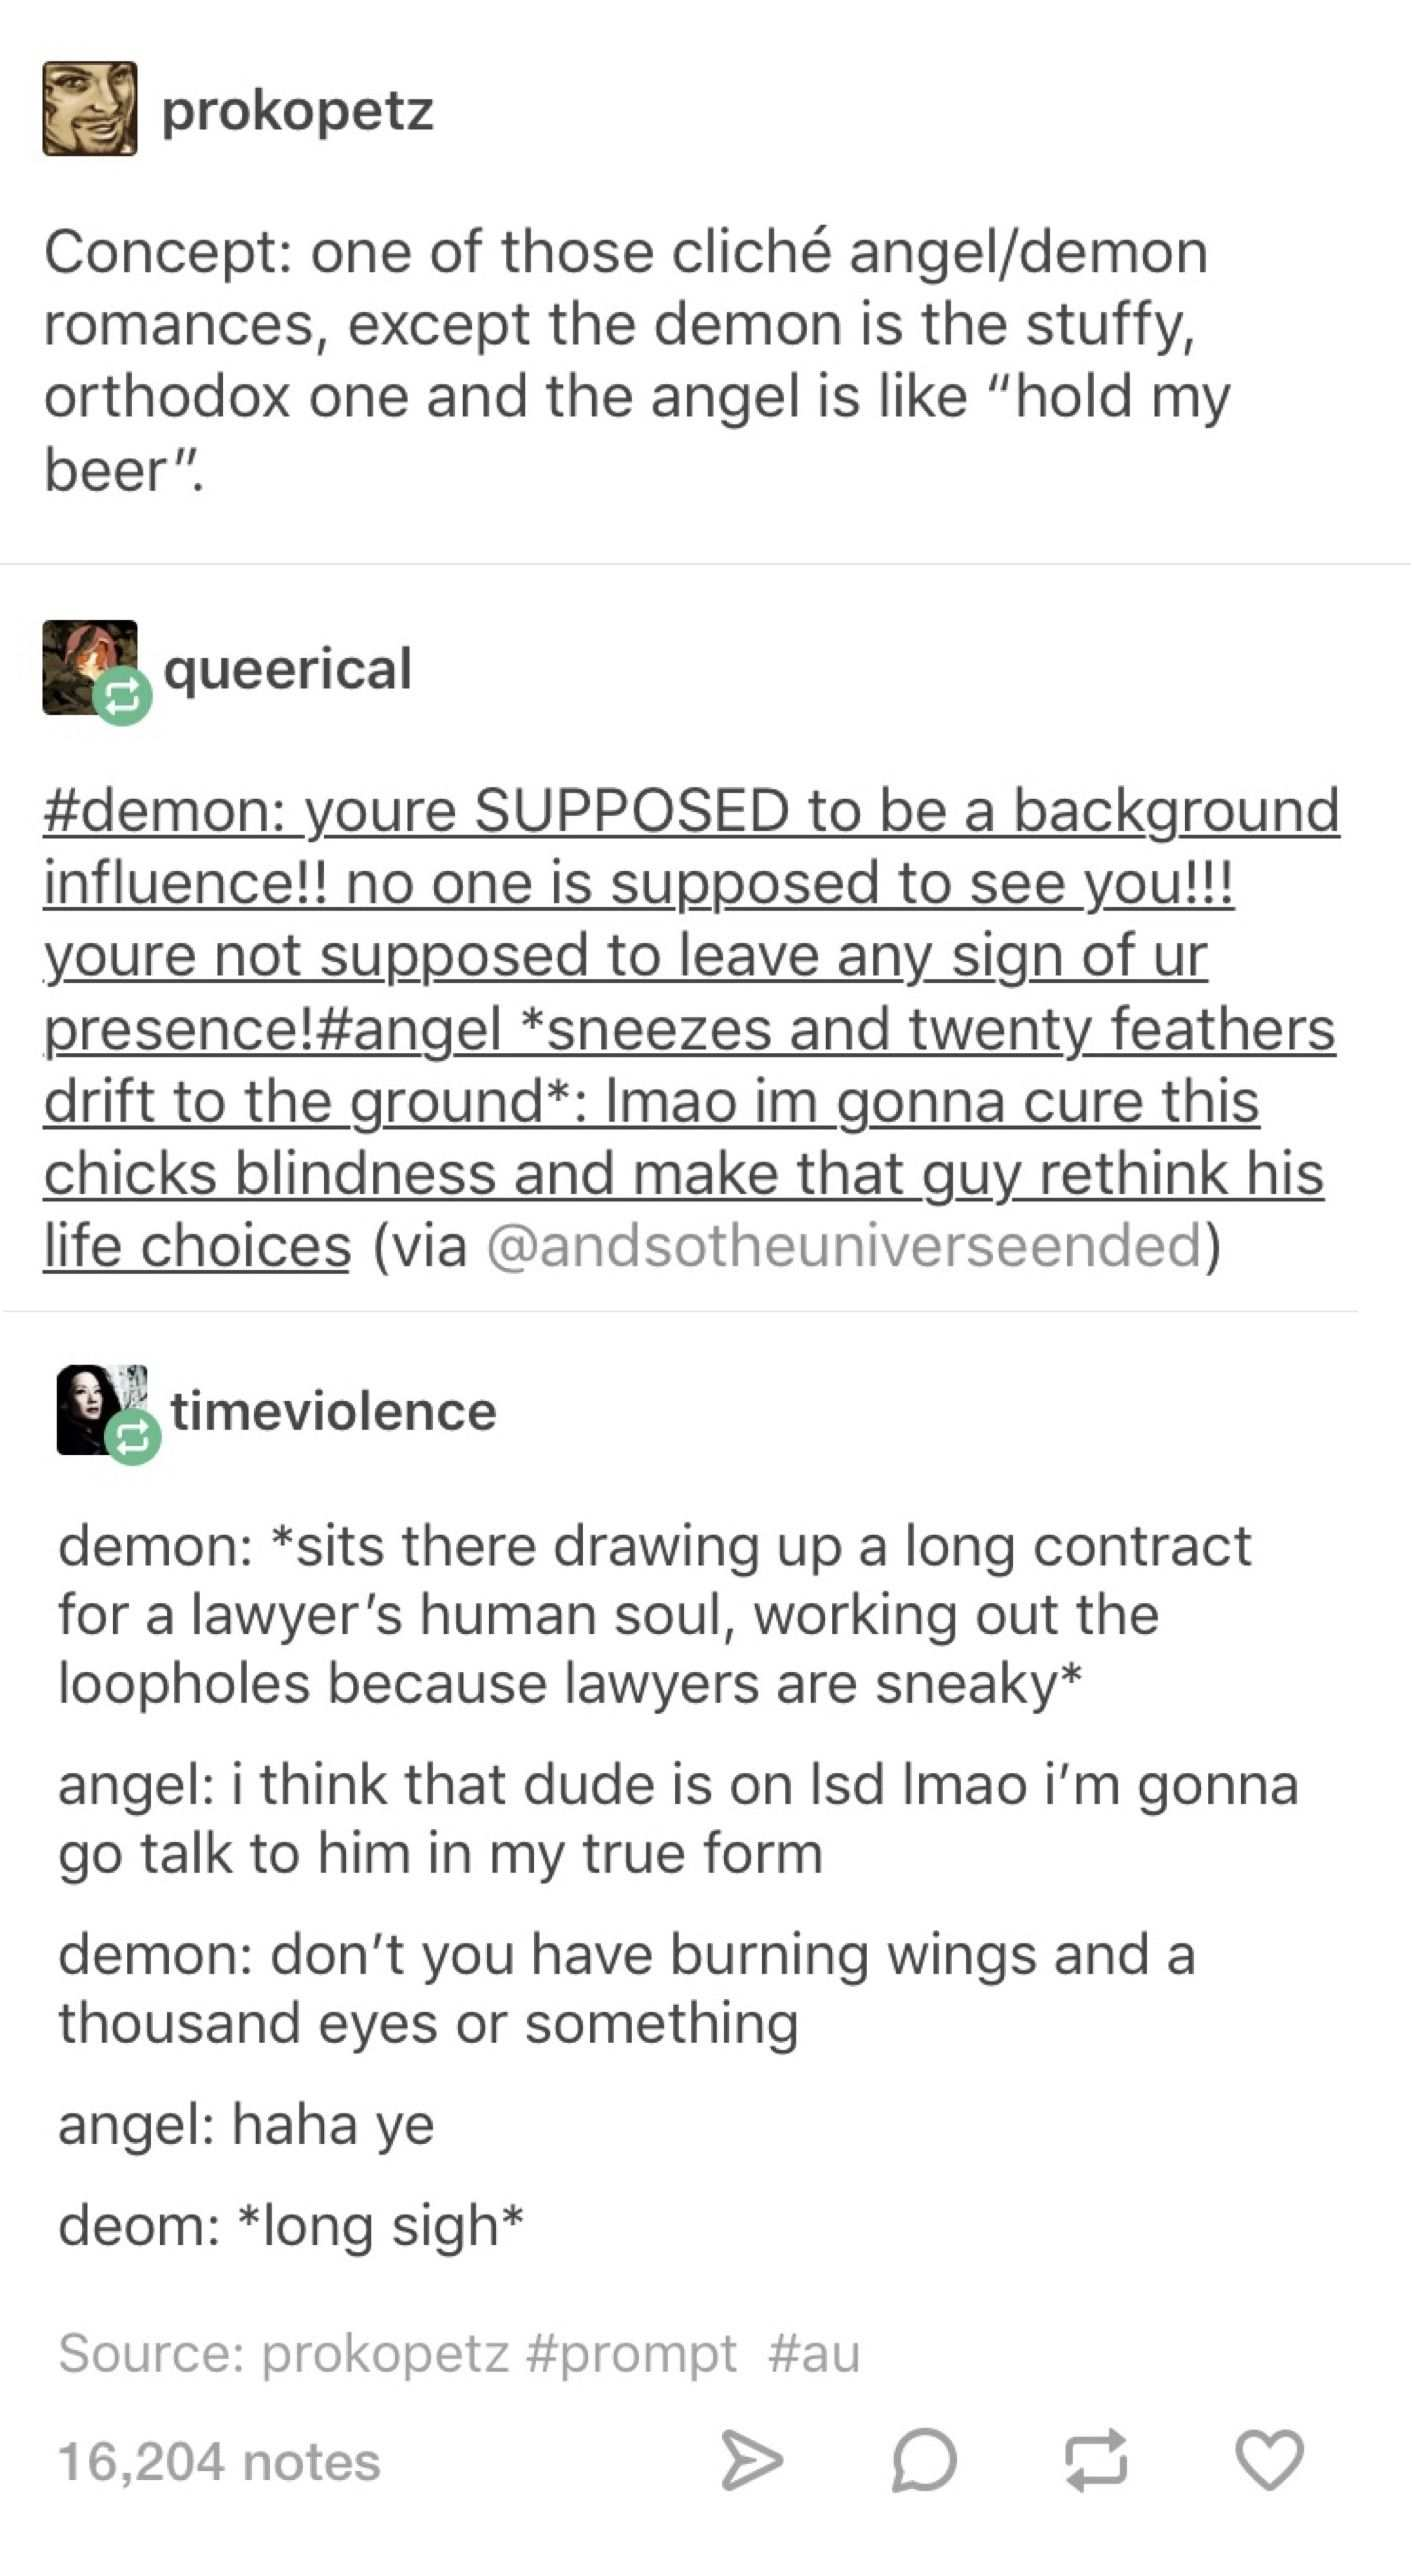 Http Picturesquemuse Tumblr Com Post 175422014363 Timeviolence Queerical Prokopetz Concept Writing Promts Writing Prompts Writing Promps